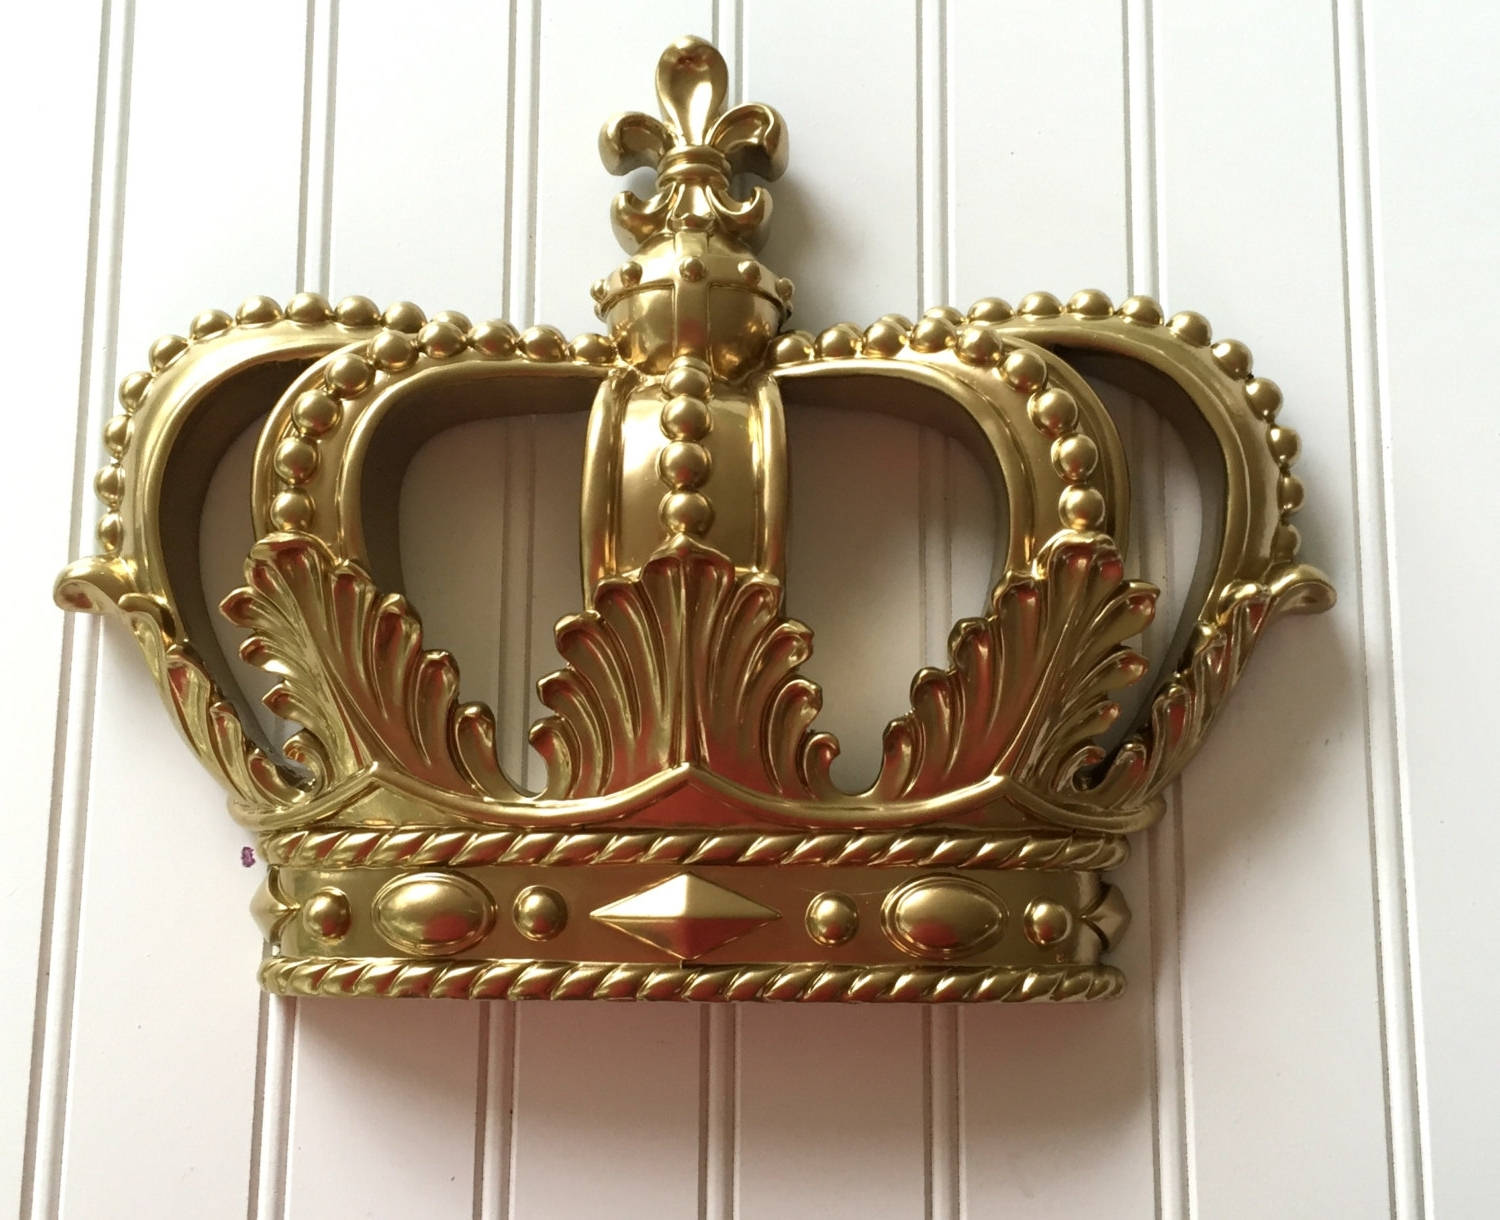 Latest Beetling Design Crown 3D Wall Art Throughout Trendy Metal Crown Wall Decor Sale Gold Princess Nursery Hanging (View 4 of 8)